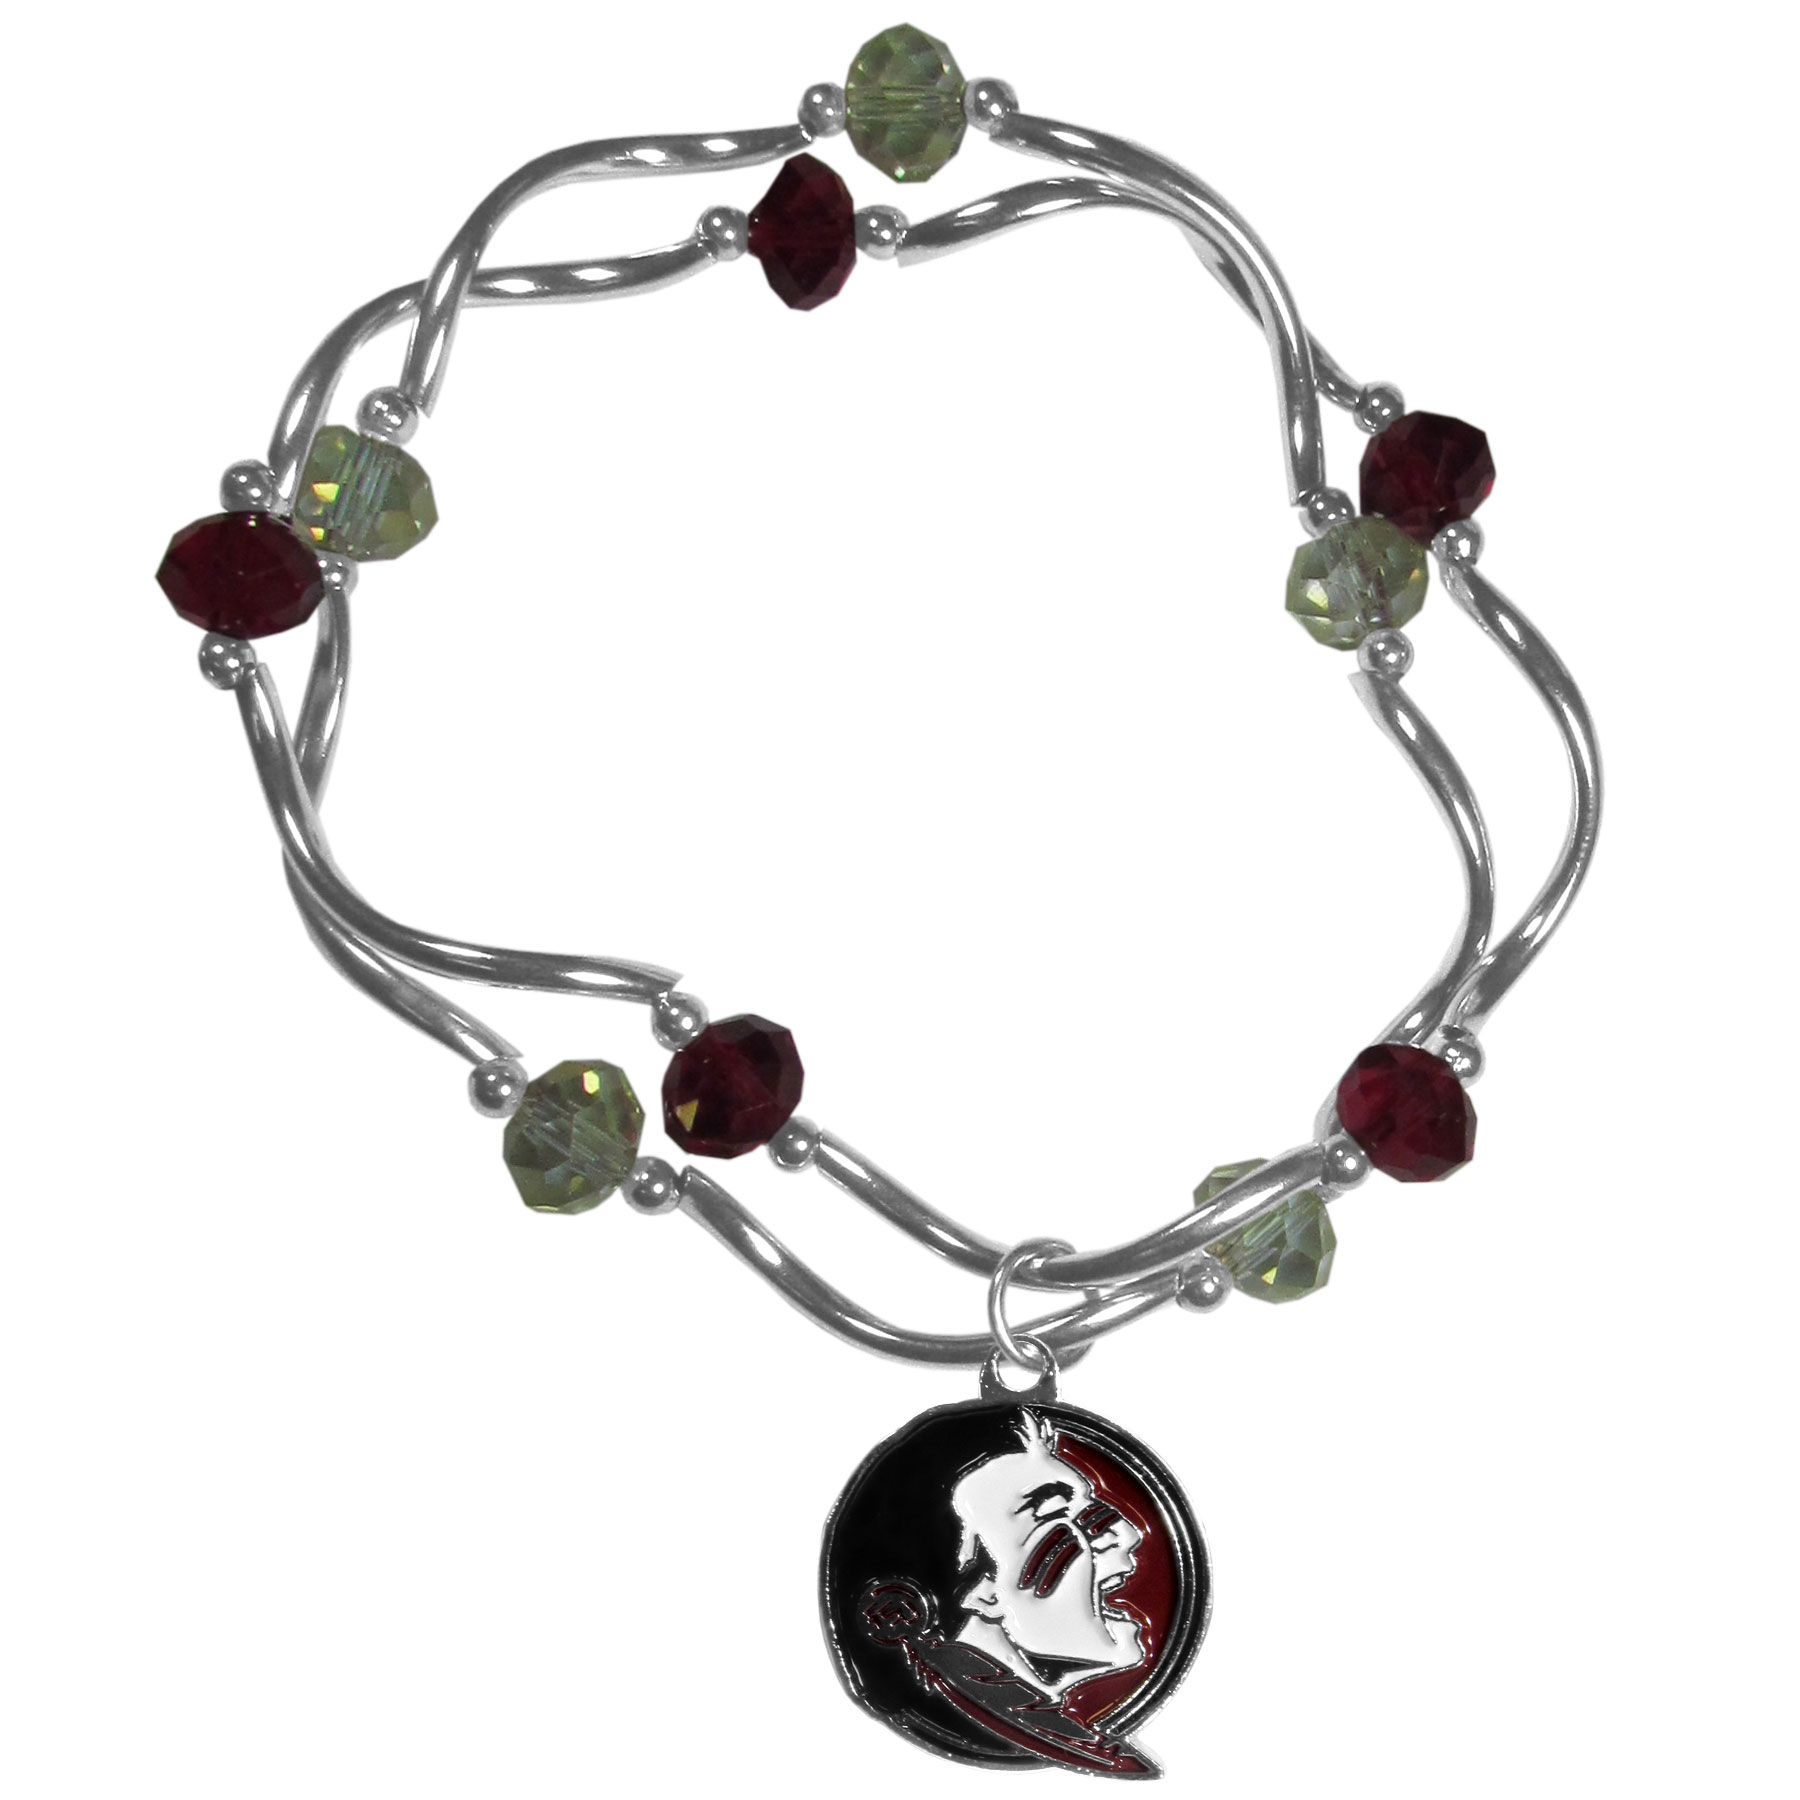 Florida St. Seminoles Crystal Bead Bracelet - This delicate bead bracelet has eye-catching team colored beads that are strung on 2 stretch cords that provide a comfortable and easy fit. The crystals are separated by beautiful helix beads in high polish chrome for a truly designer inspired look. The 2 strands of beads intertwine for a fun and stylish bracelet. This chic accessory is finished off with a Florida St. Seminoles team charm that has expertly carved detail and an enameled color finish. A contemporary look to thrill any female sports fan. Whether this a gift for yourself or someone special you cannot miss with this trend-setting fashion bracelet.